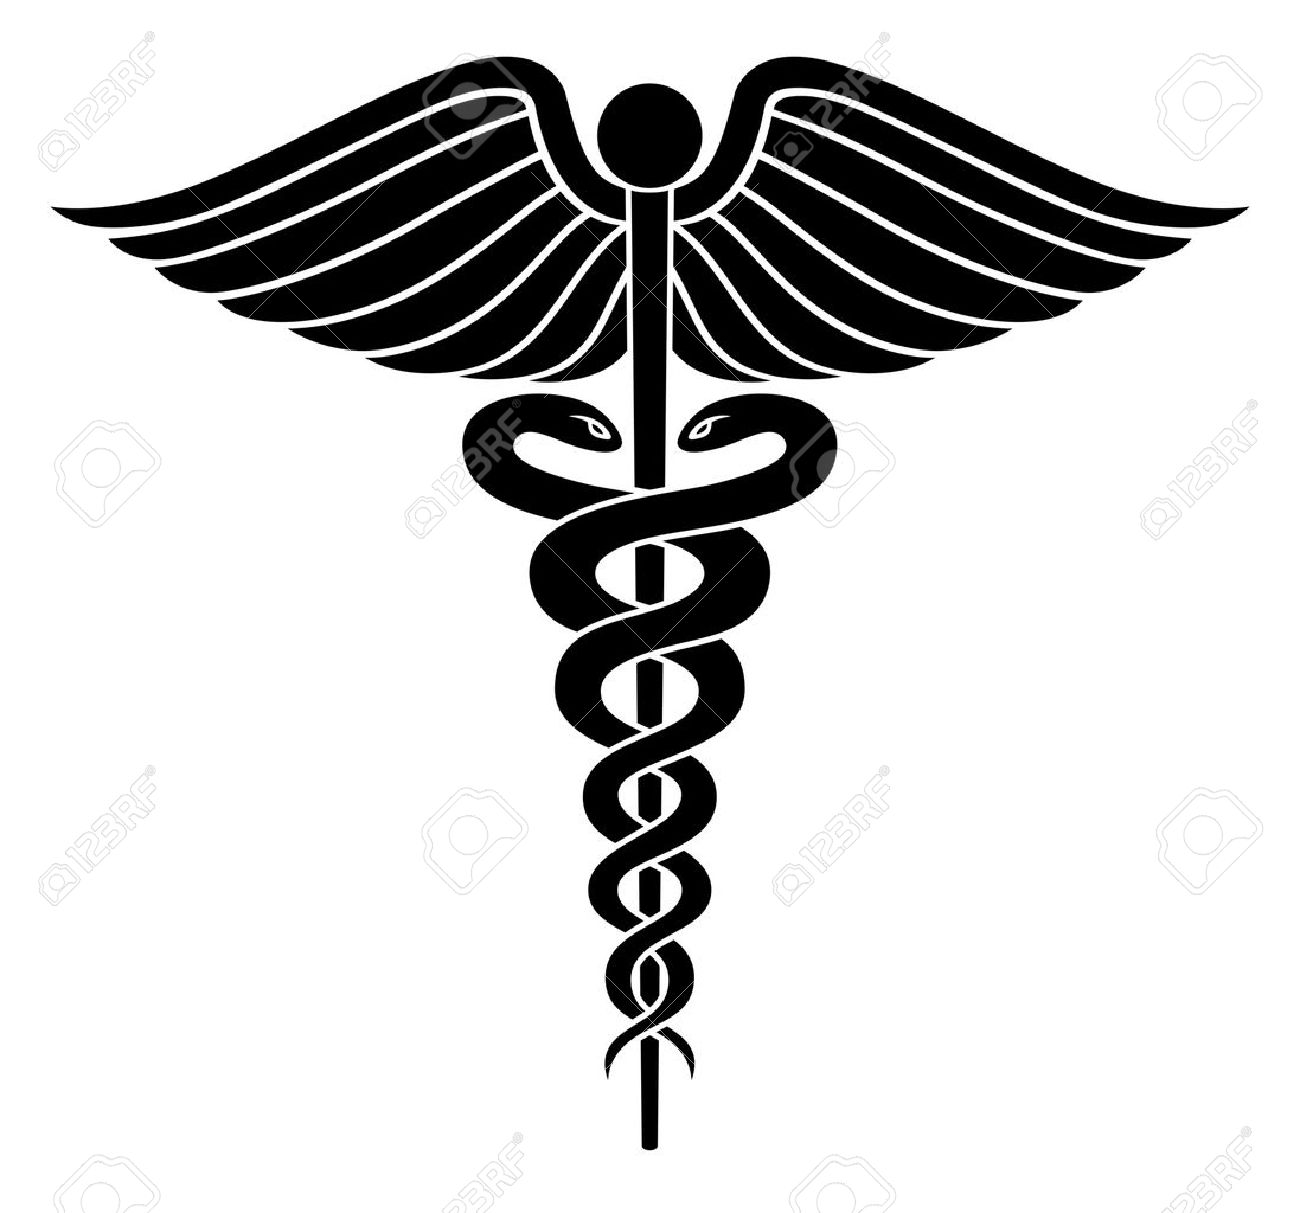 caduceus medical symbol ii is an illustration of a caduceus medical